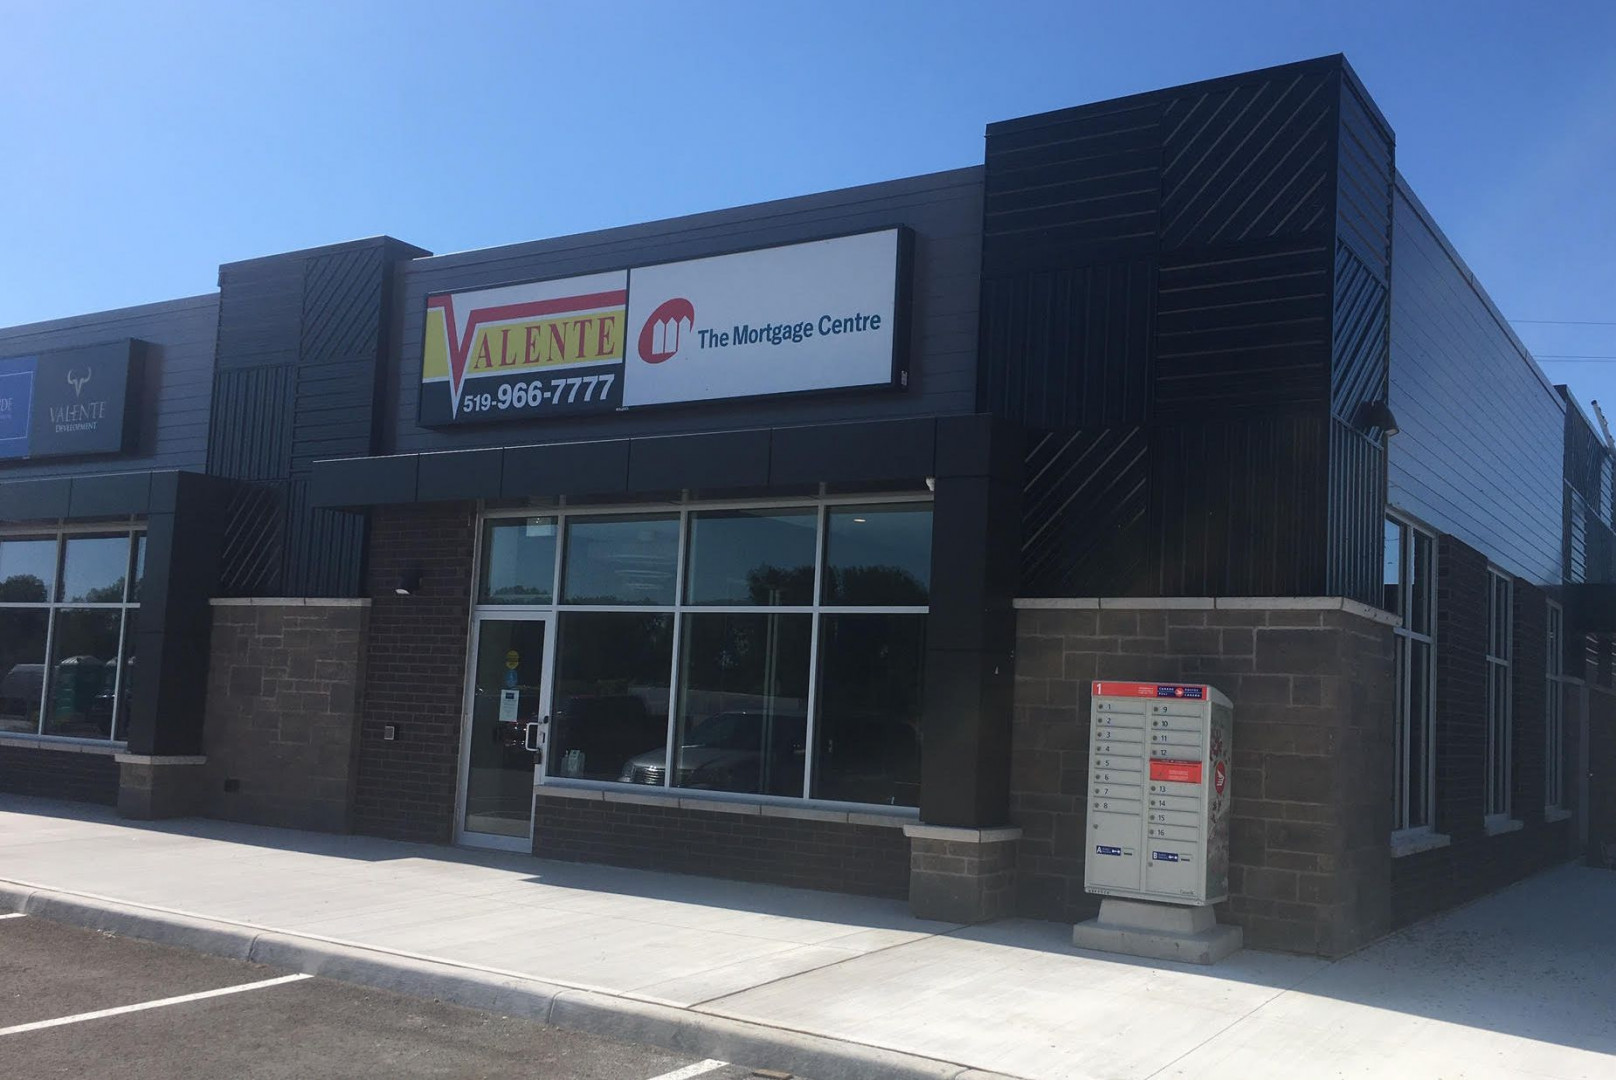 VALENTE REAL ESTATE'S LAKESHORE OFFICE NOW OPEN!